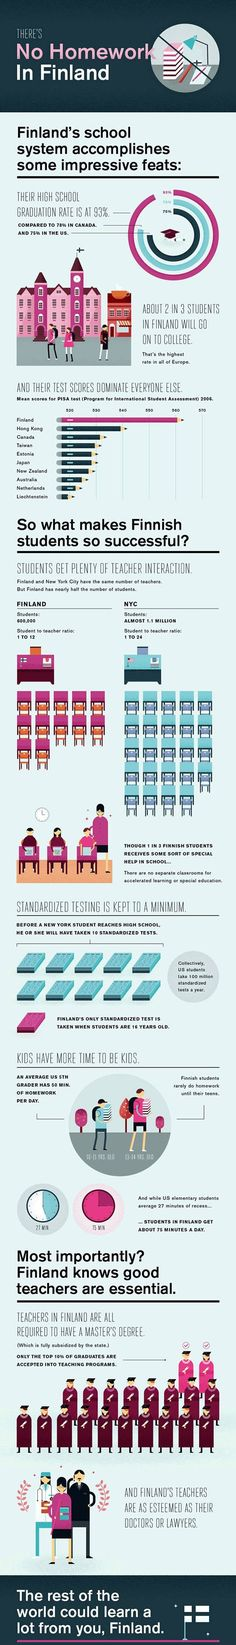 How Finnish Schools are Trouncing the US Education System with More Recess & Fewer Tests. {Infographic}